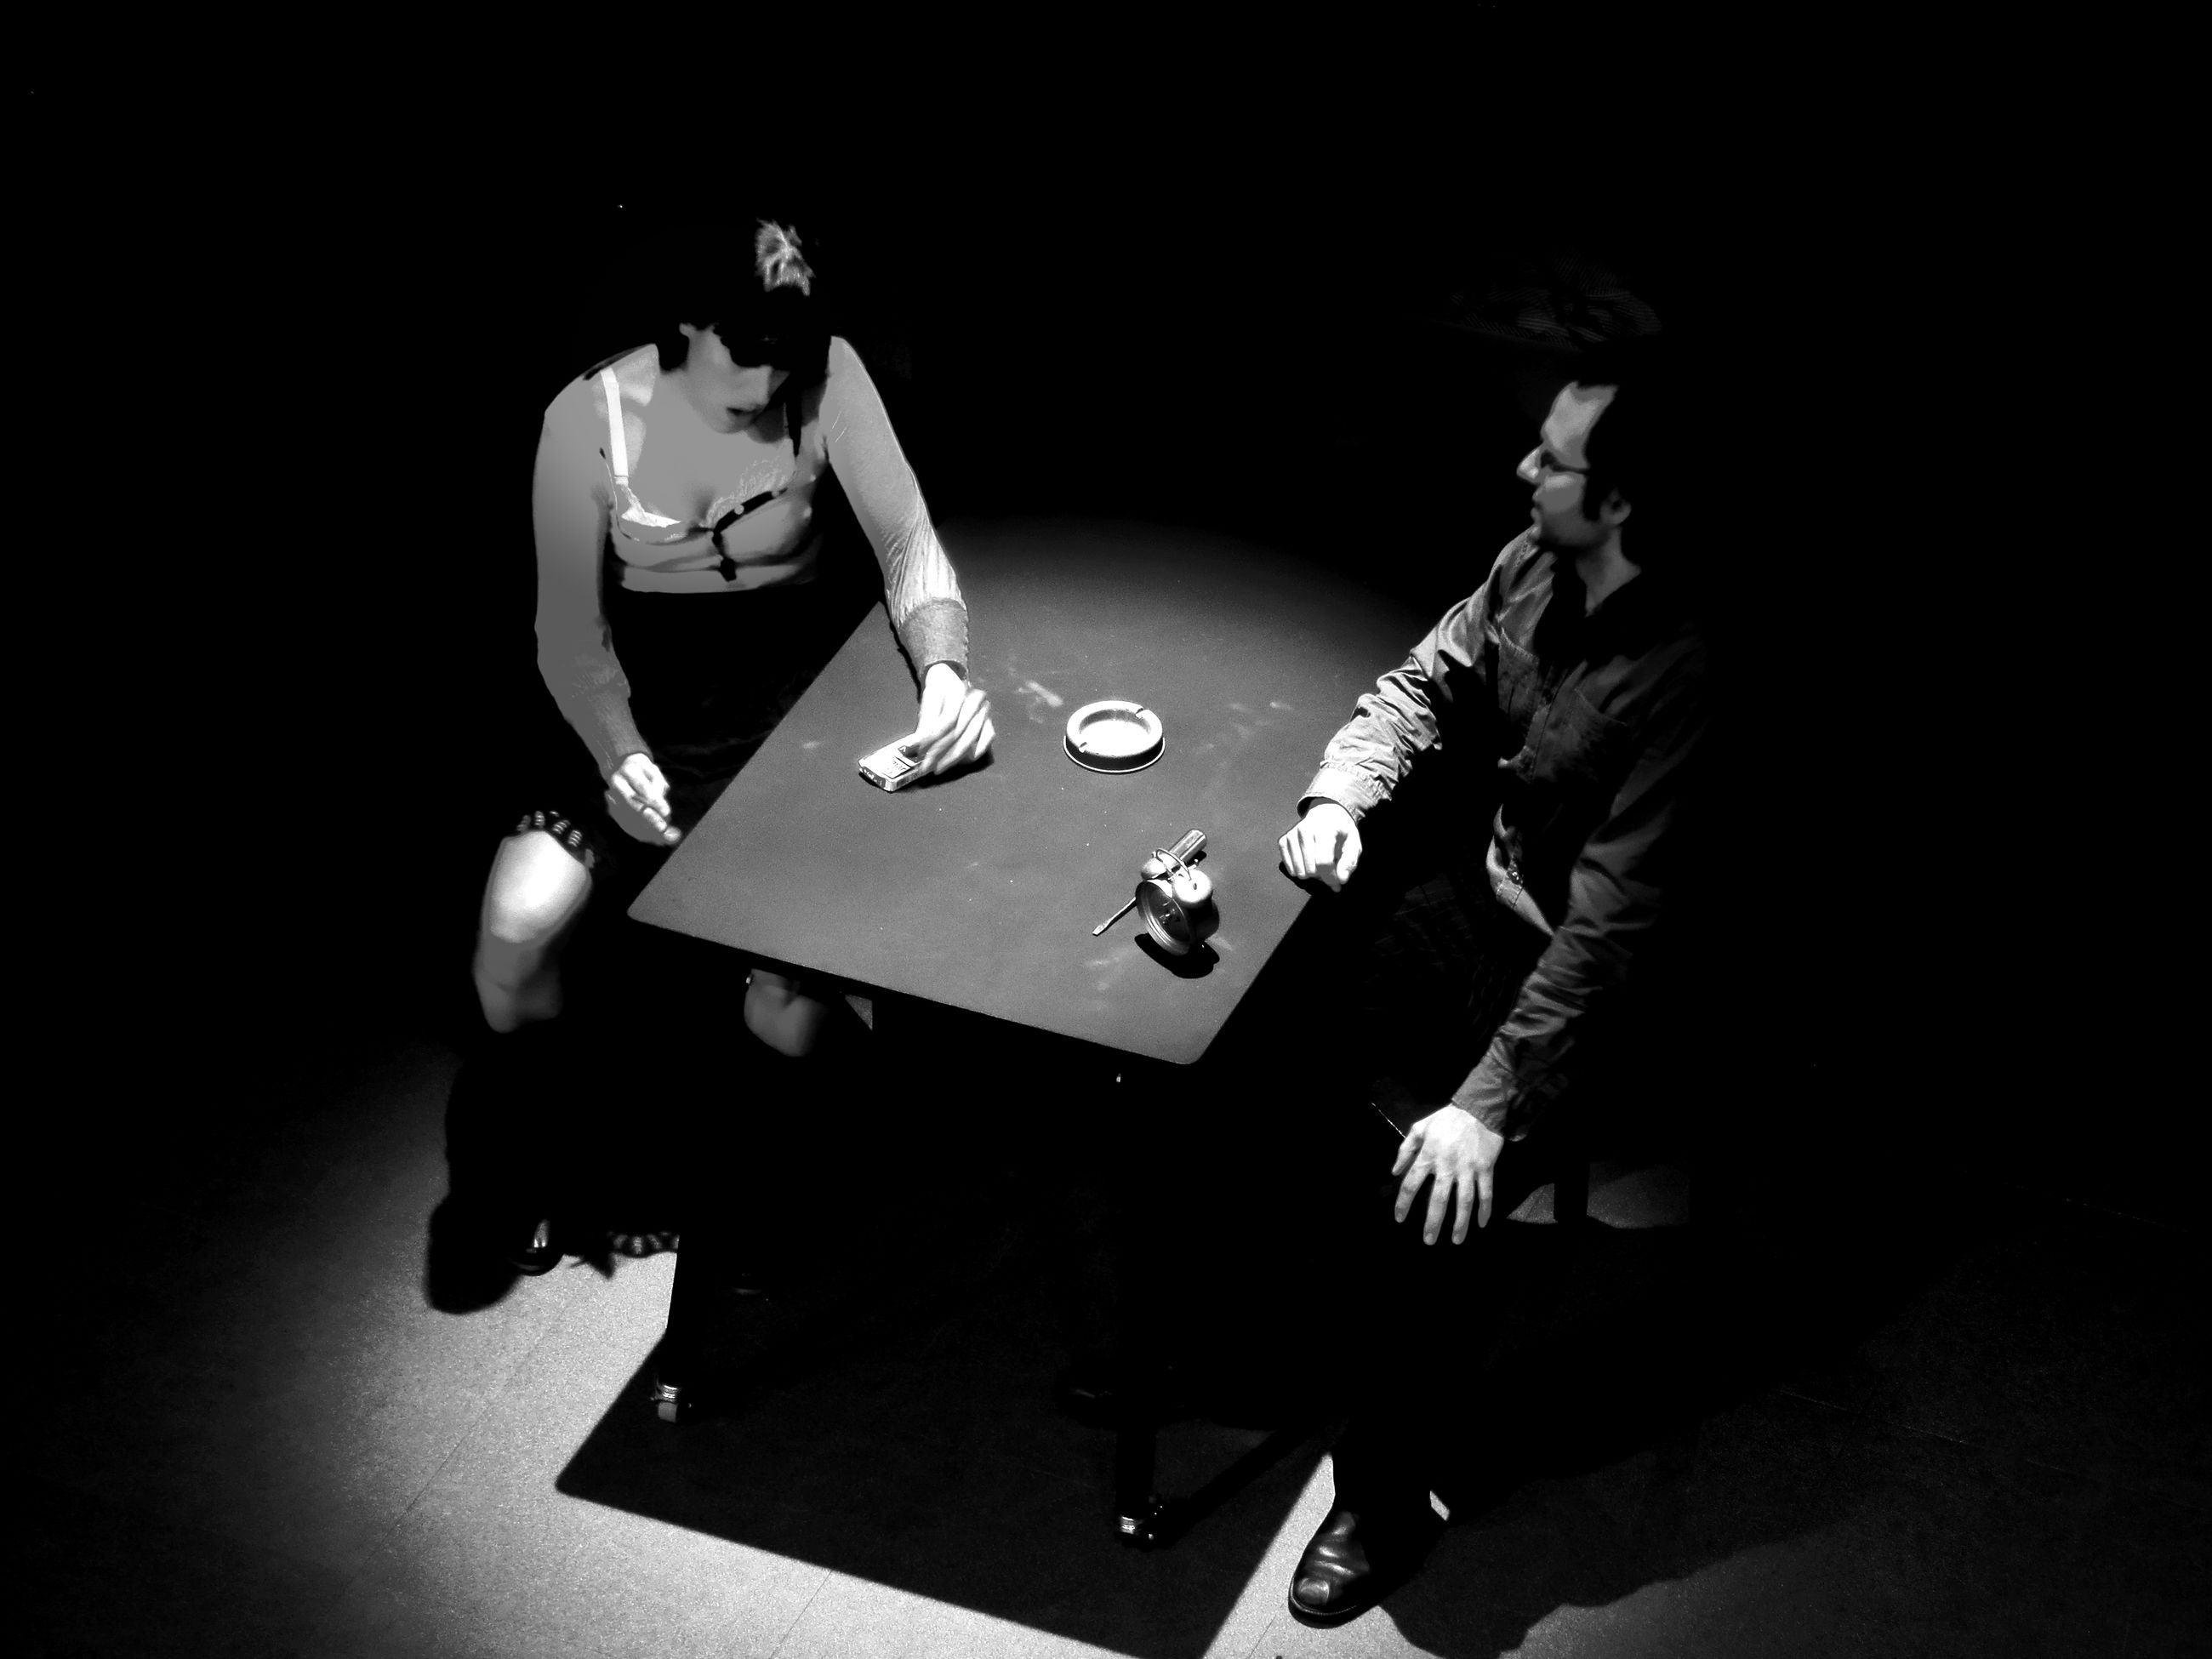 high angle view, adults only, one person, full length, people, one man only, black background, only men, night, adult, indoors, playing, suit, musical instrument, pool ball, pool - cue sport, pool table, snooker